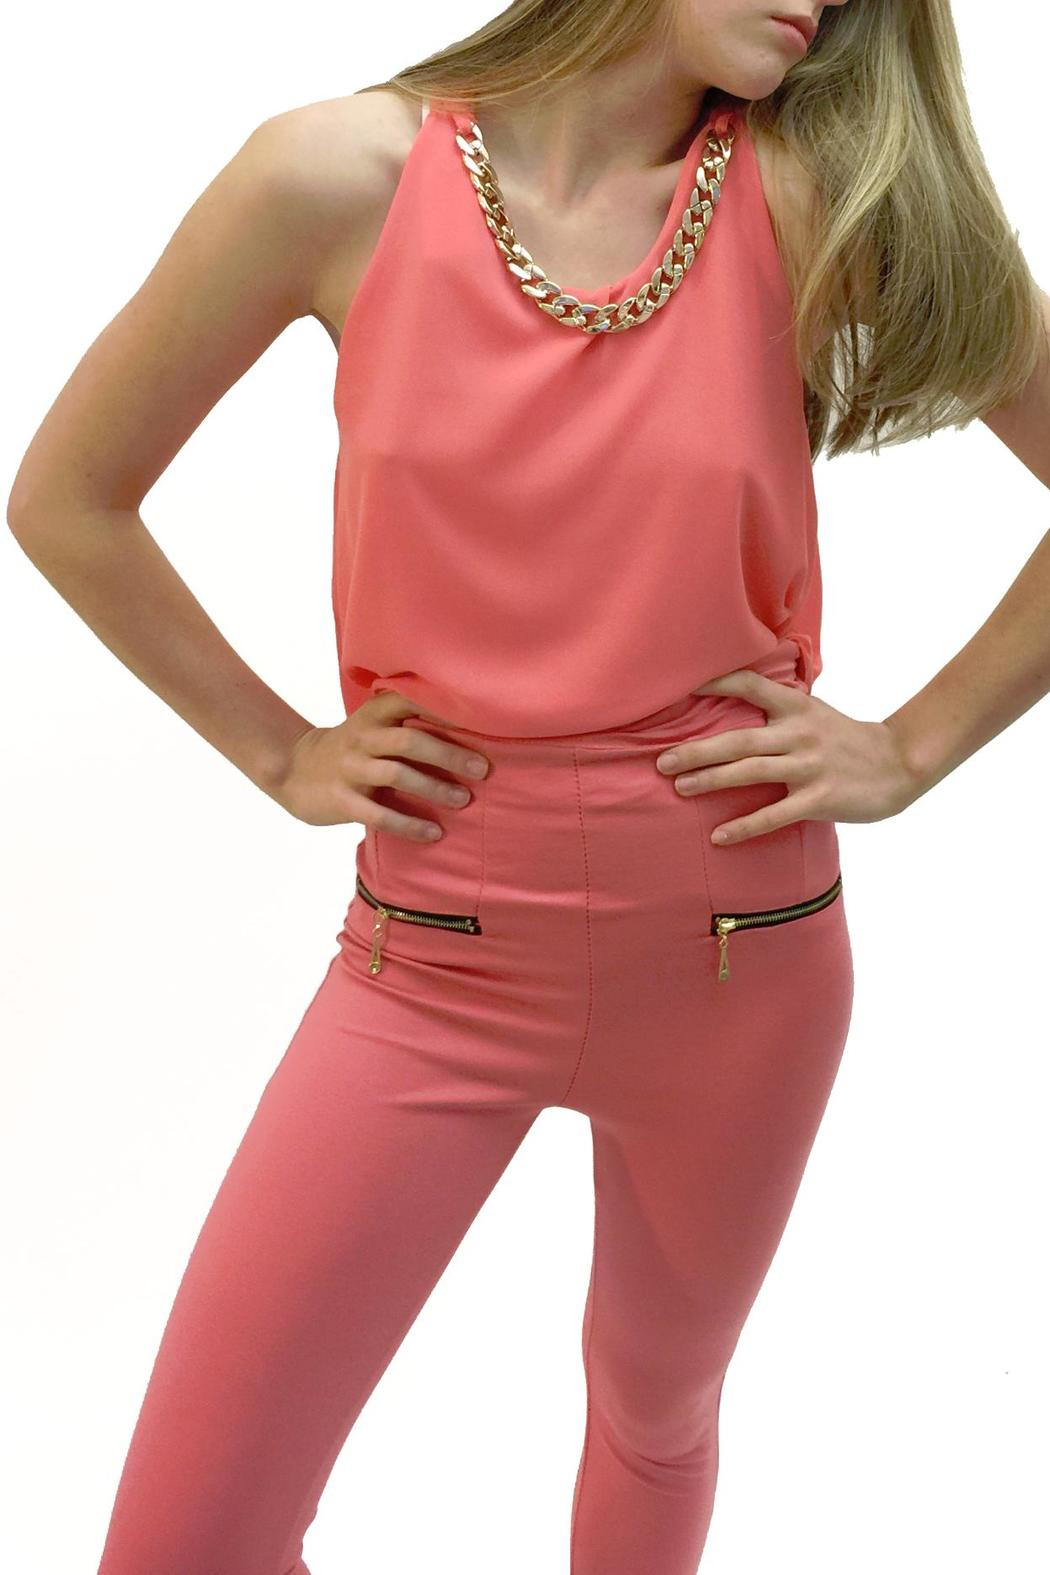 Italian Collection Coral Chain-Collar Top - Main Image